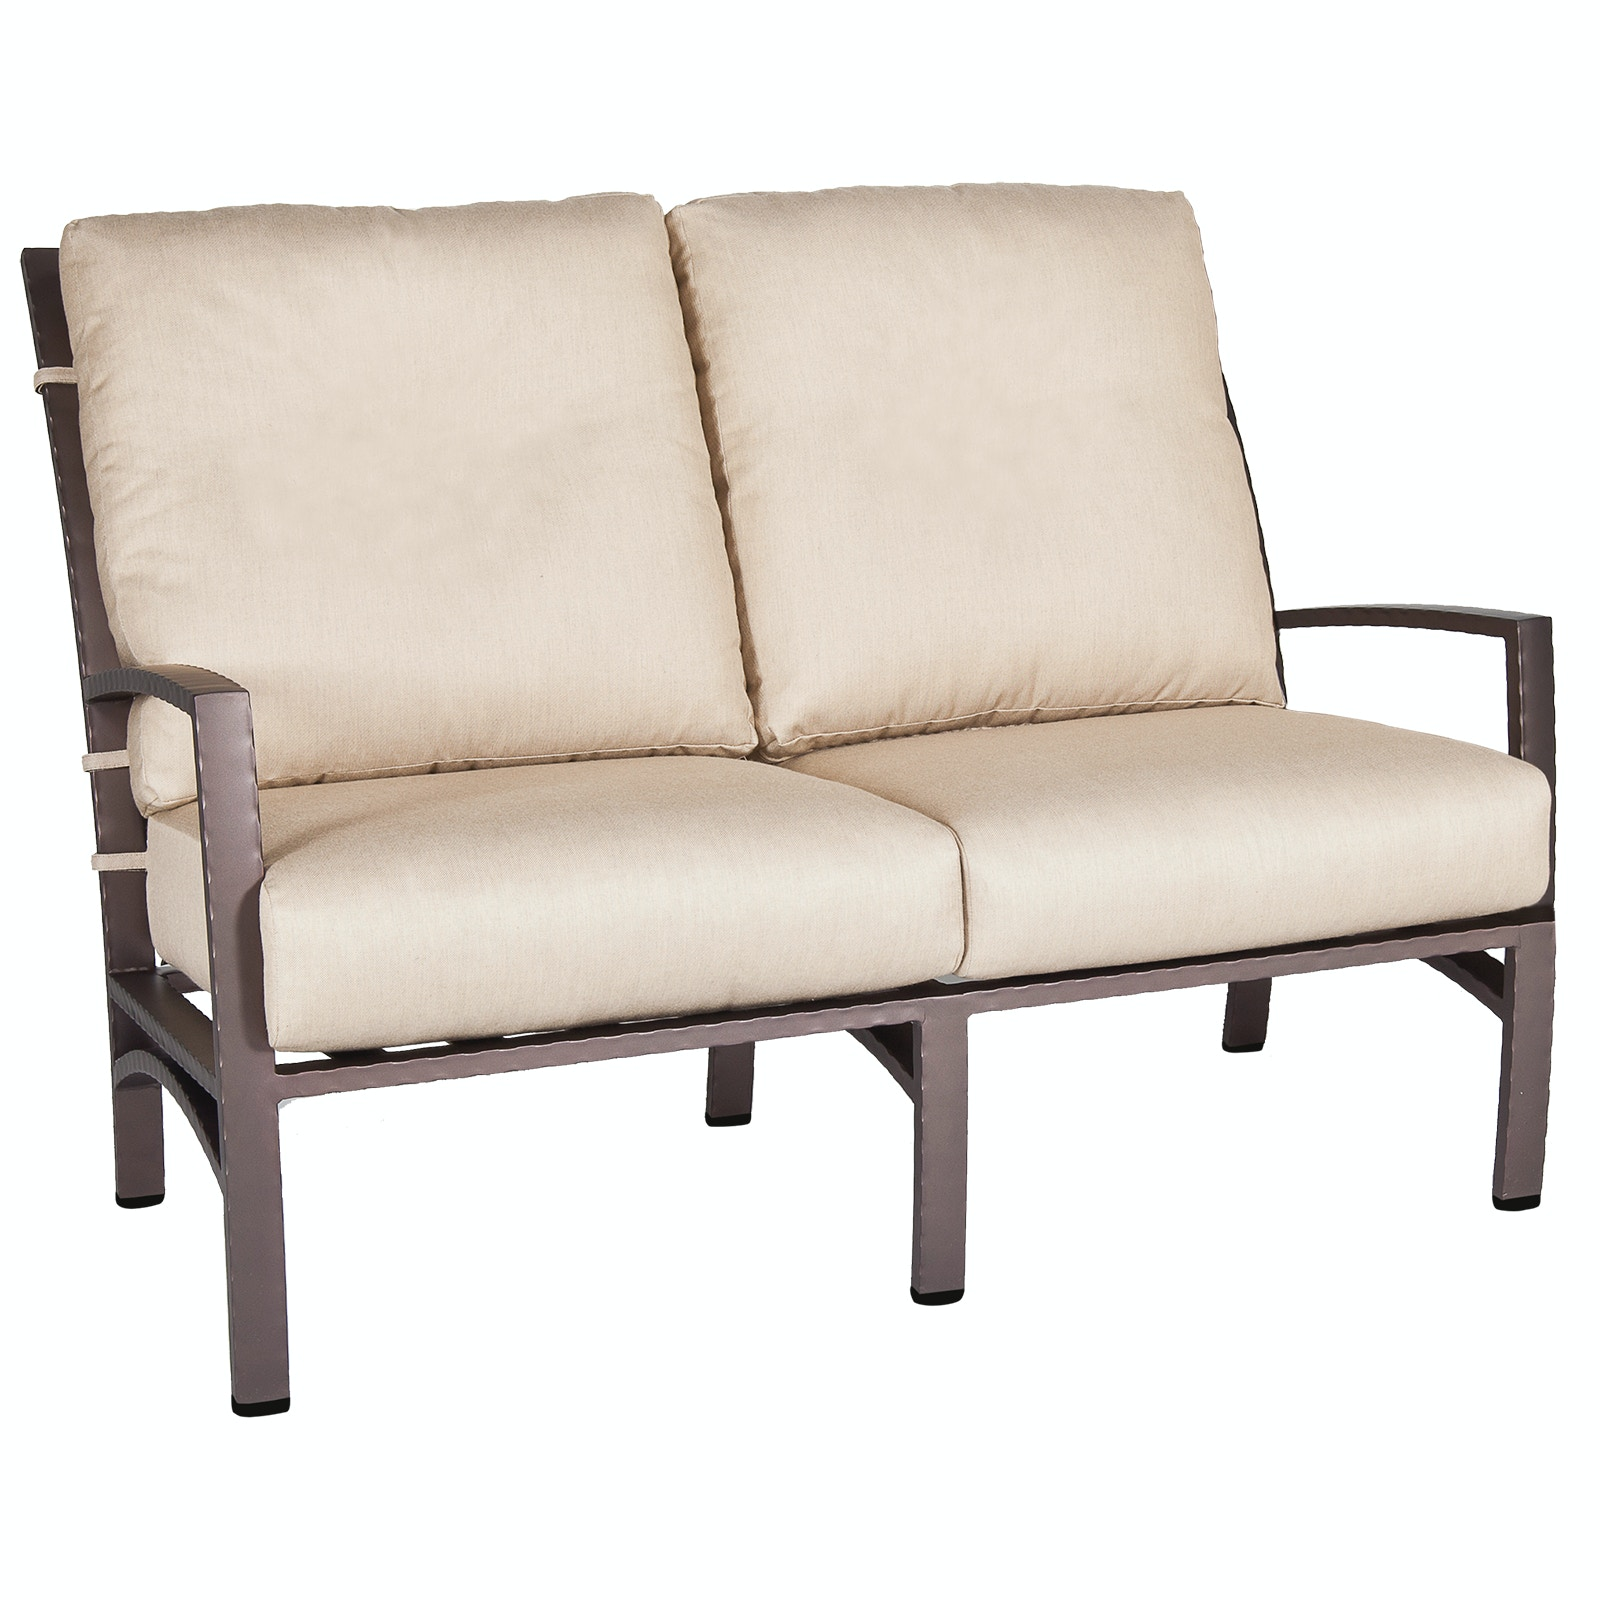 48115 2S OW Lee Furniture Sol Love Seat